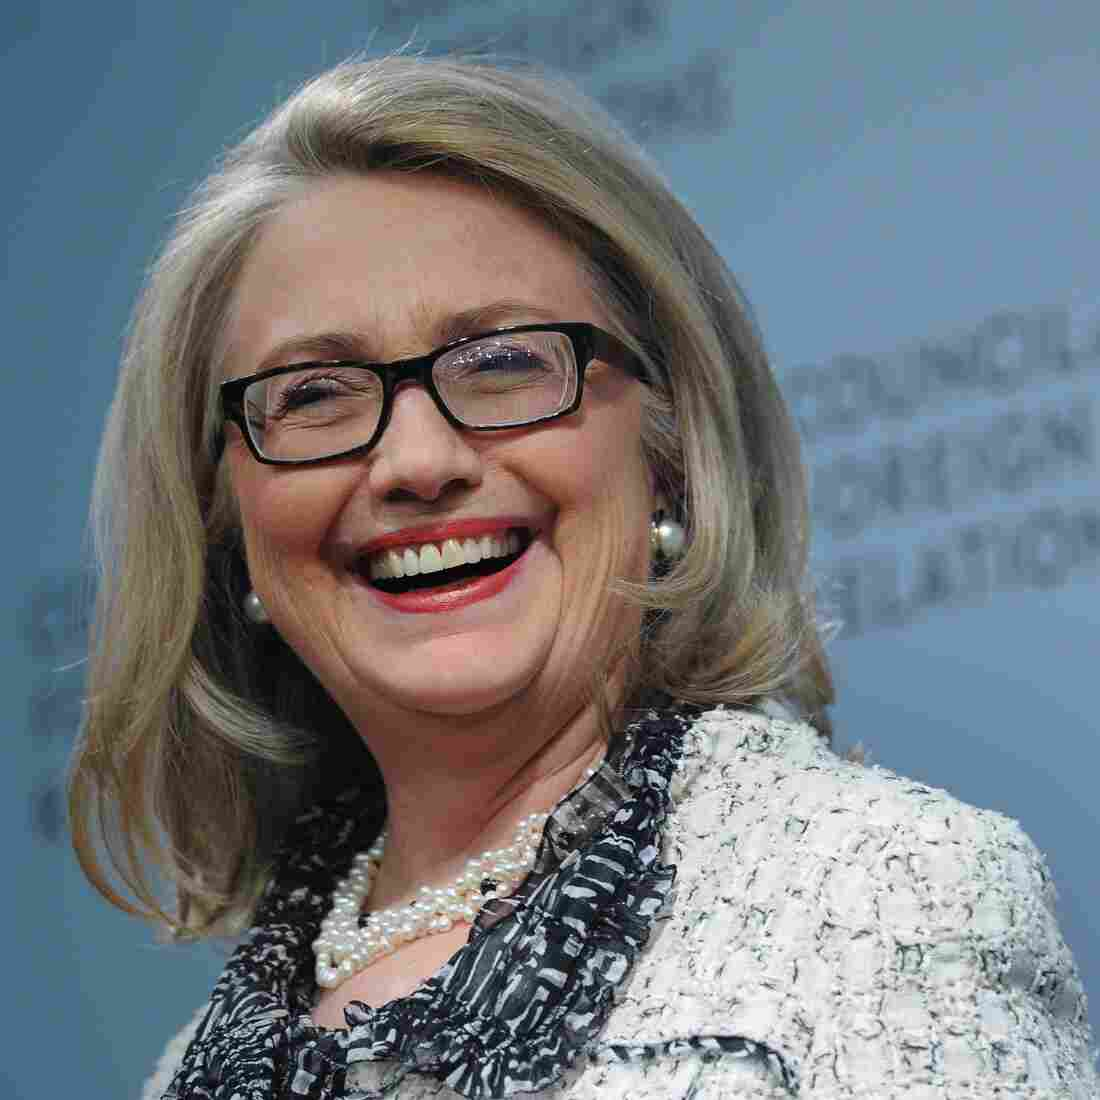 Hillary Clinton Formally Resigns As Secretary Of State